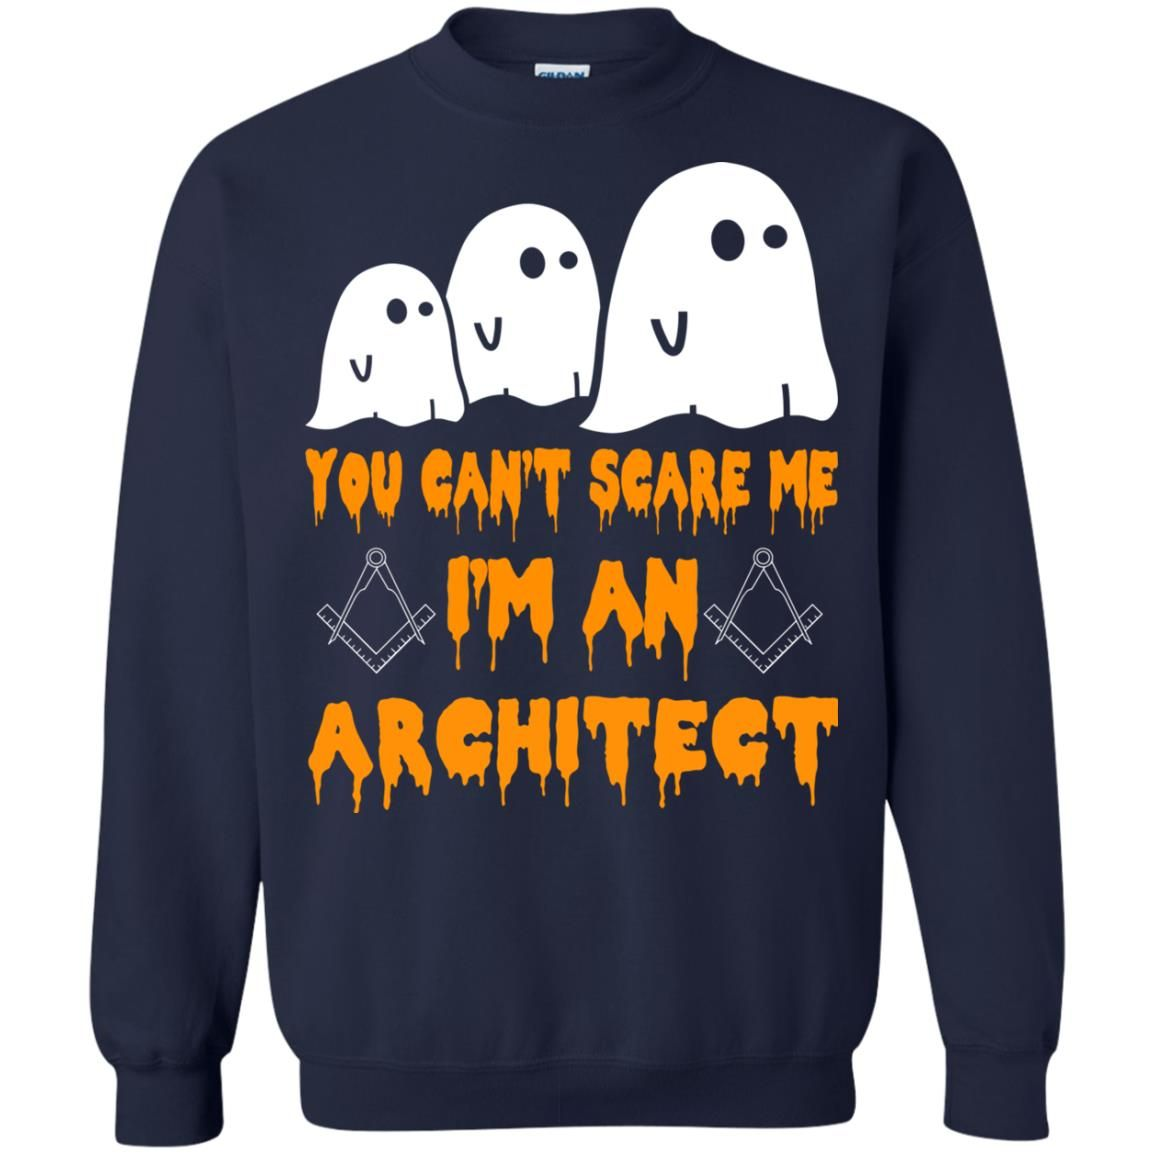 image 522 - You can't scare me I'm an Architect shirt, hoodie, tank